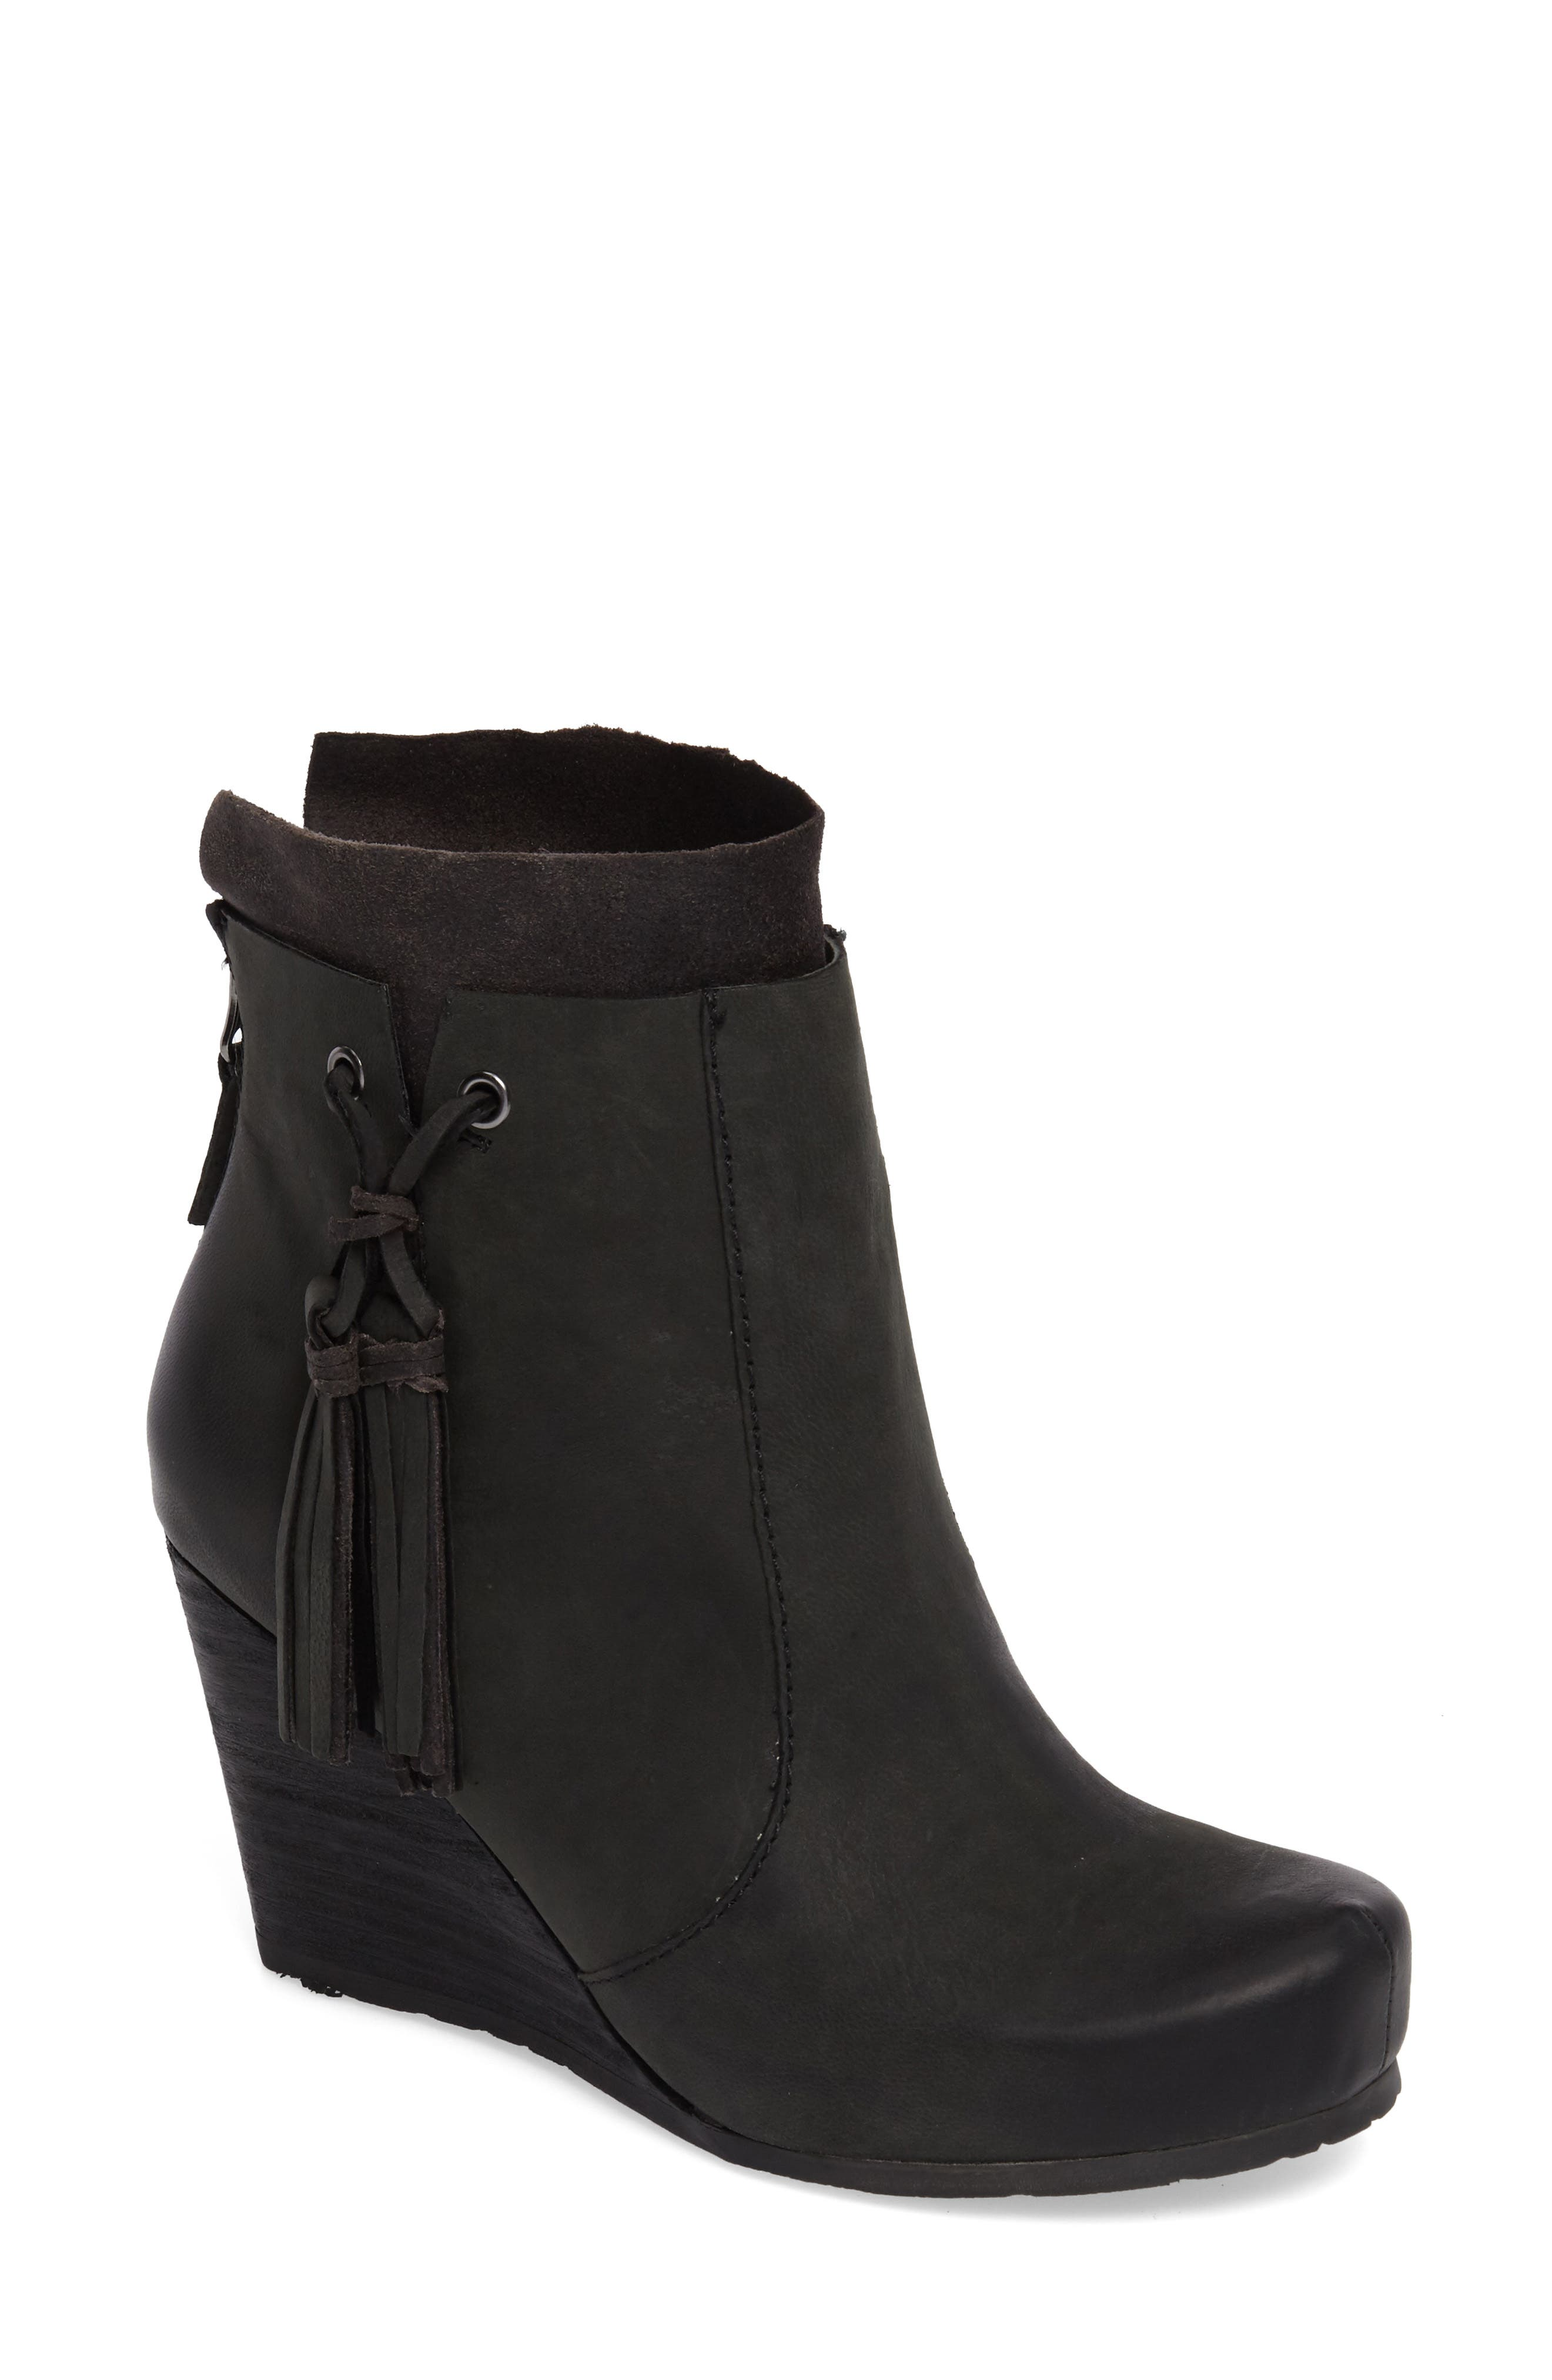 Alternate Image 1 Selected - OTBT Vagary Wedge Bootie (Women)